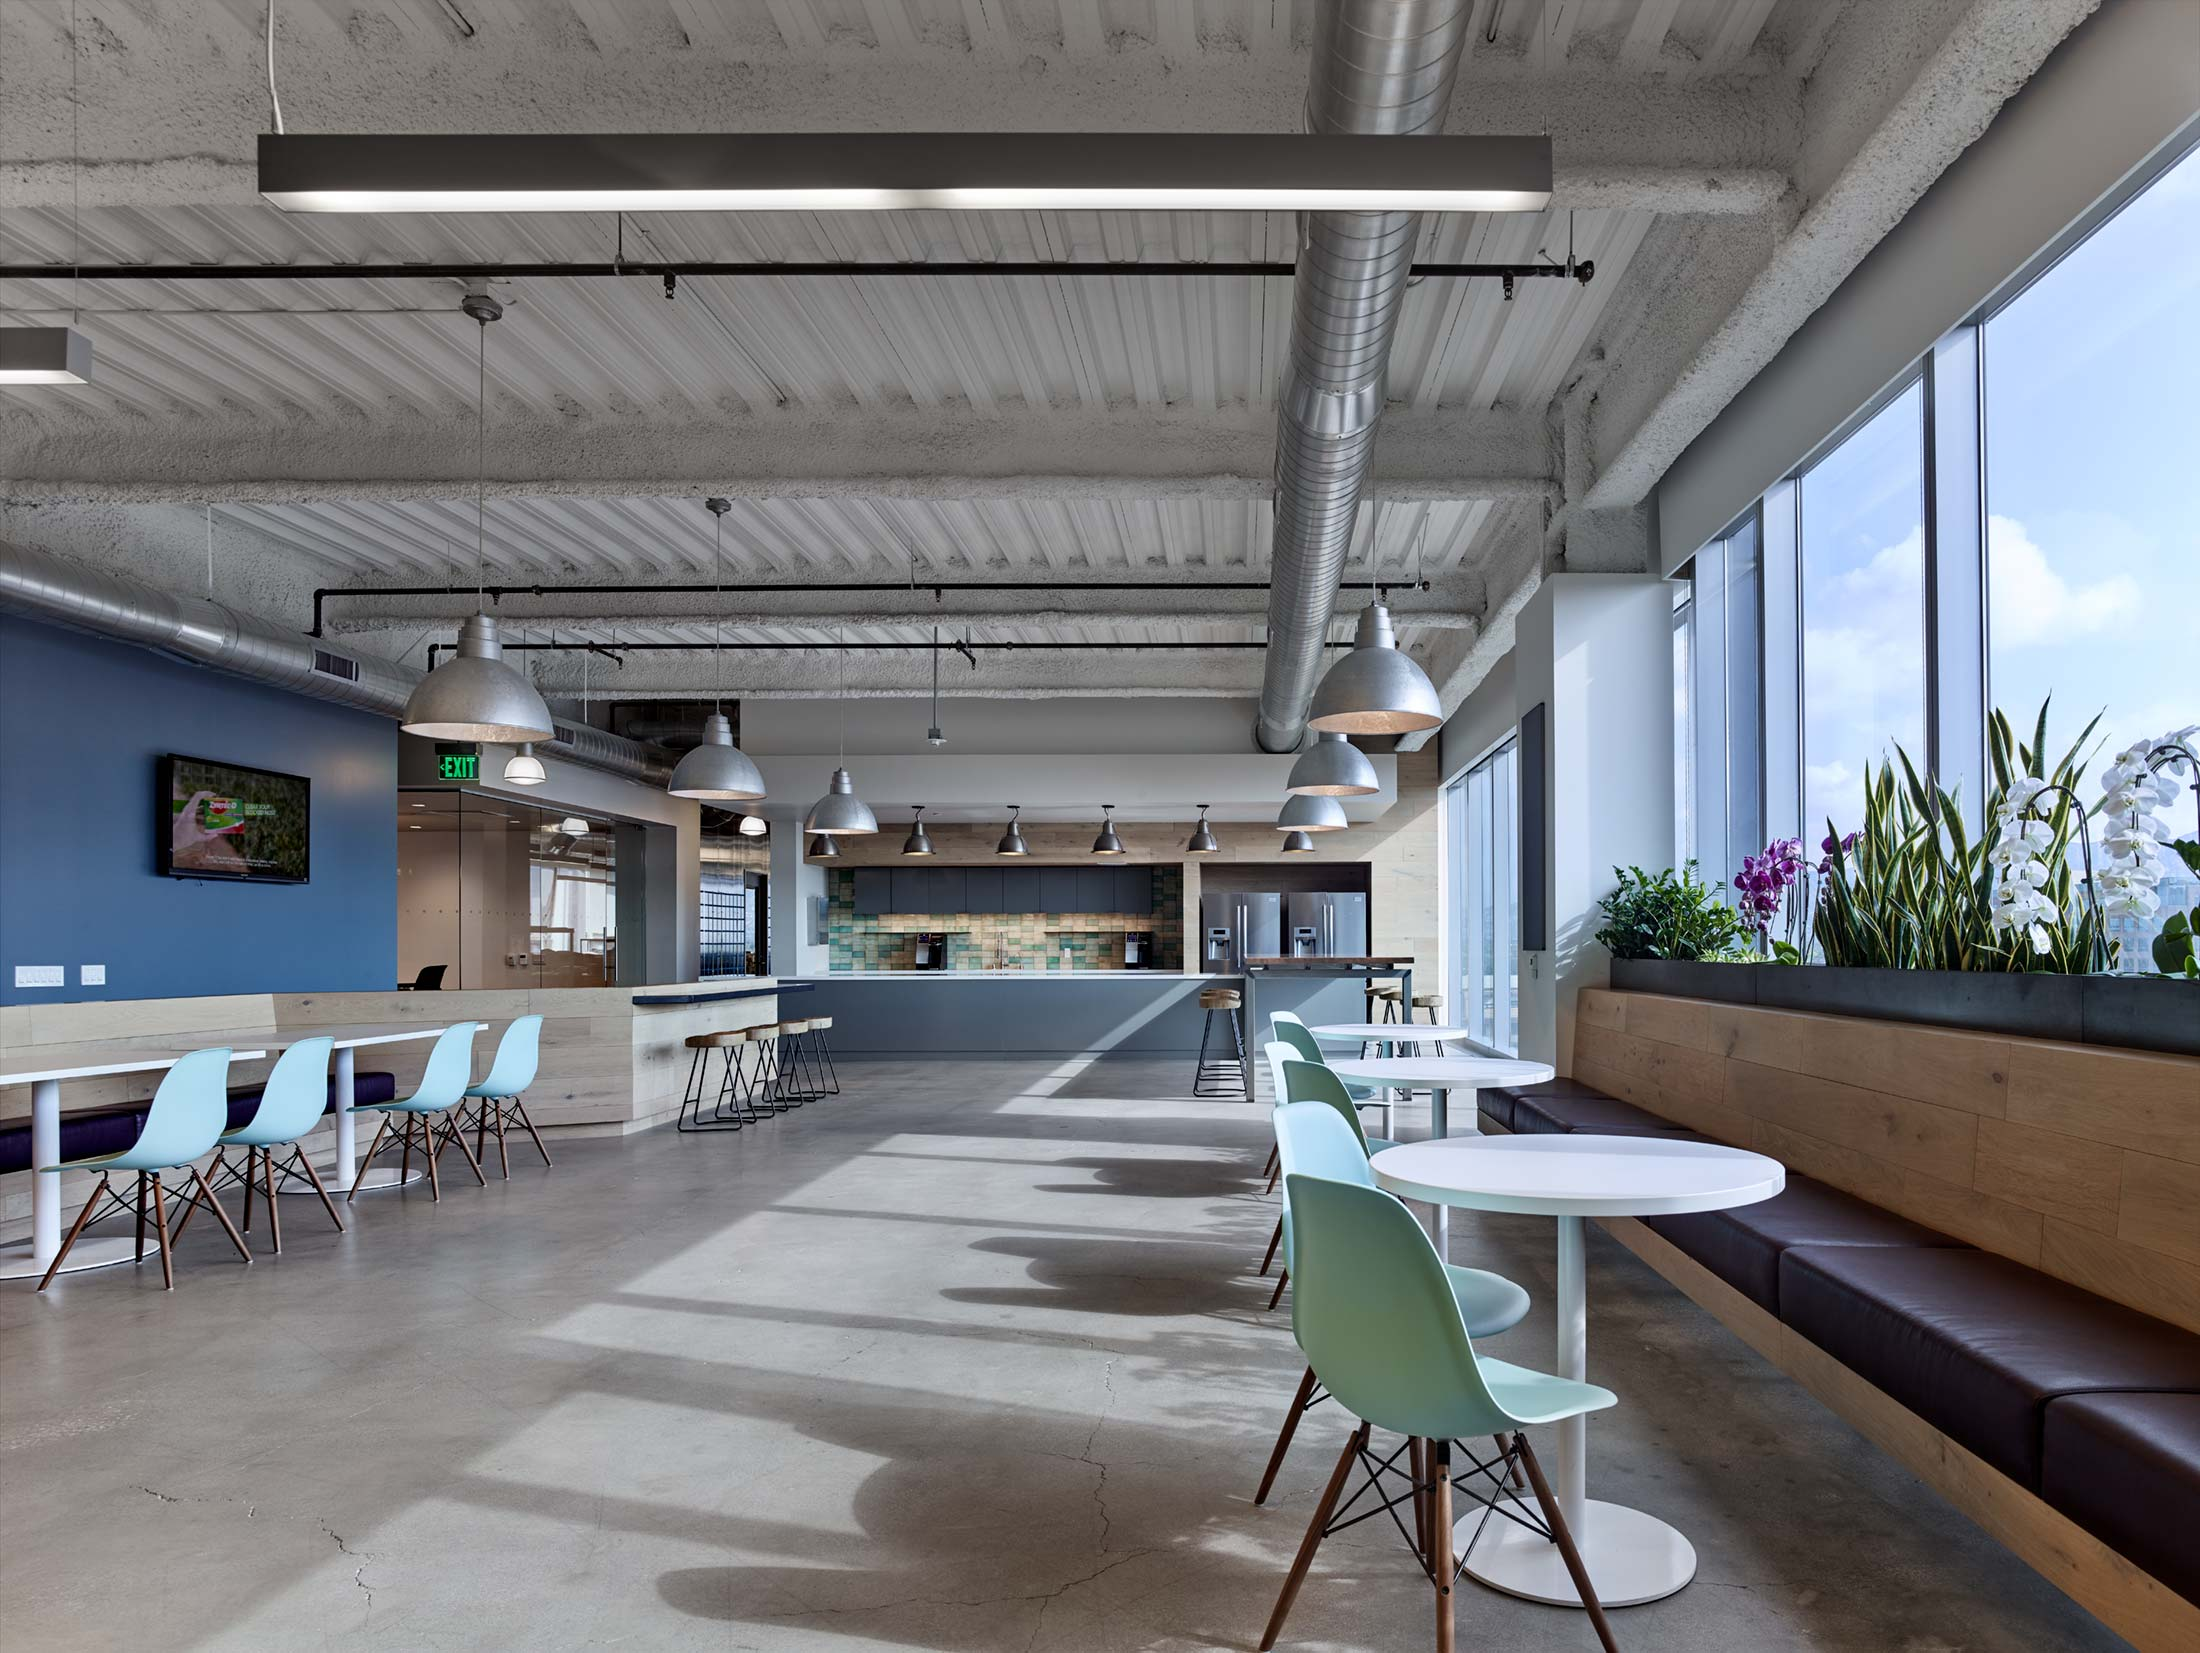 modern-architecture-commercial-interiors-workplace-office-california-shubindonaldson-freemantle-media-05